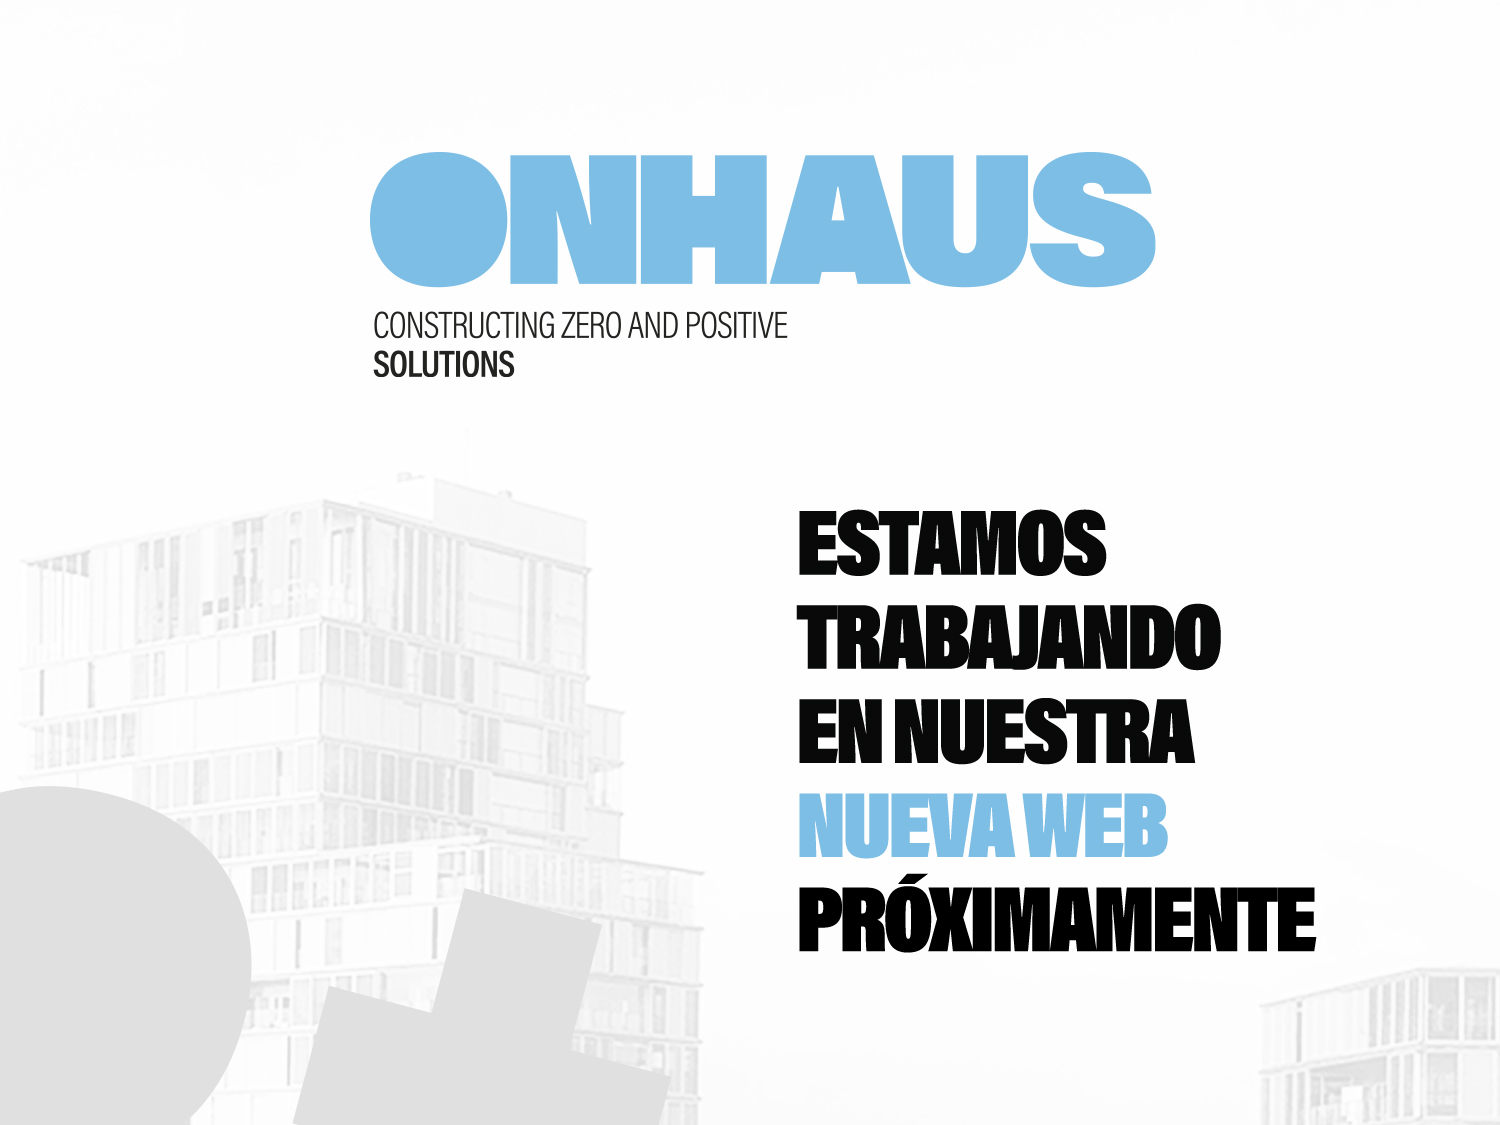 Onhaus Working Progress